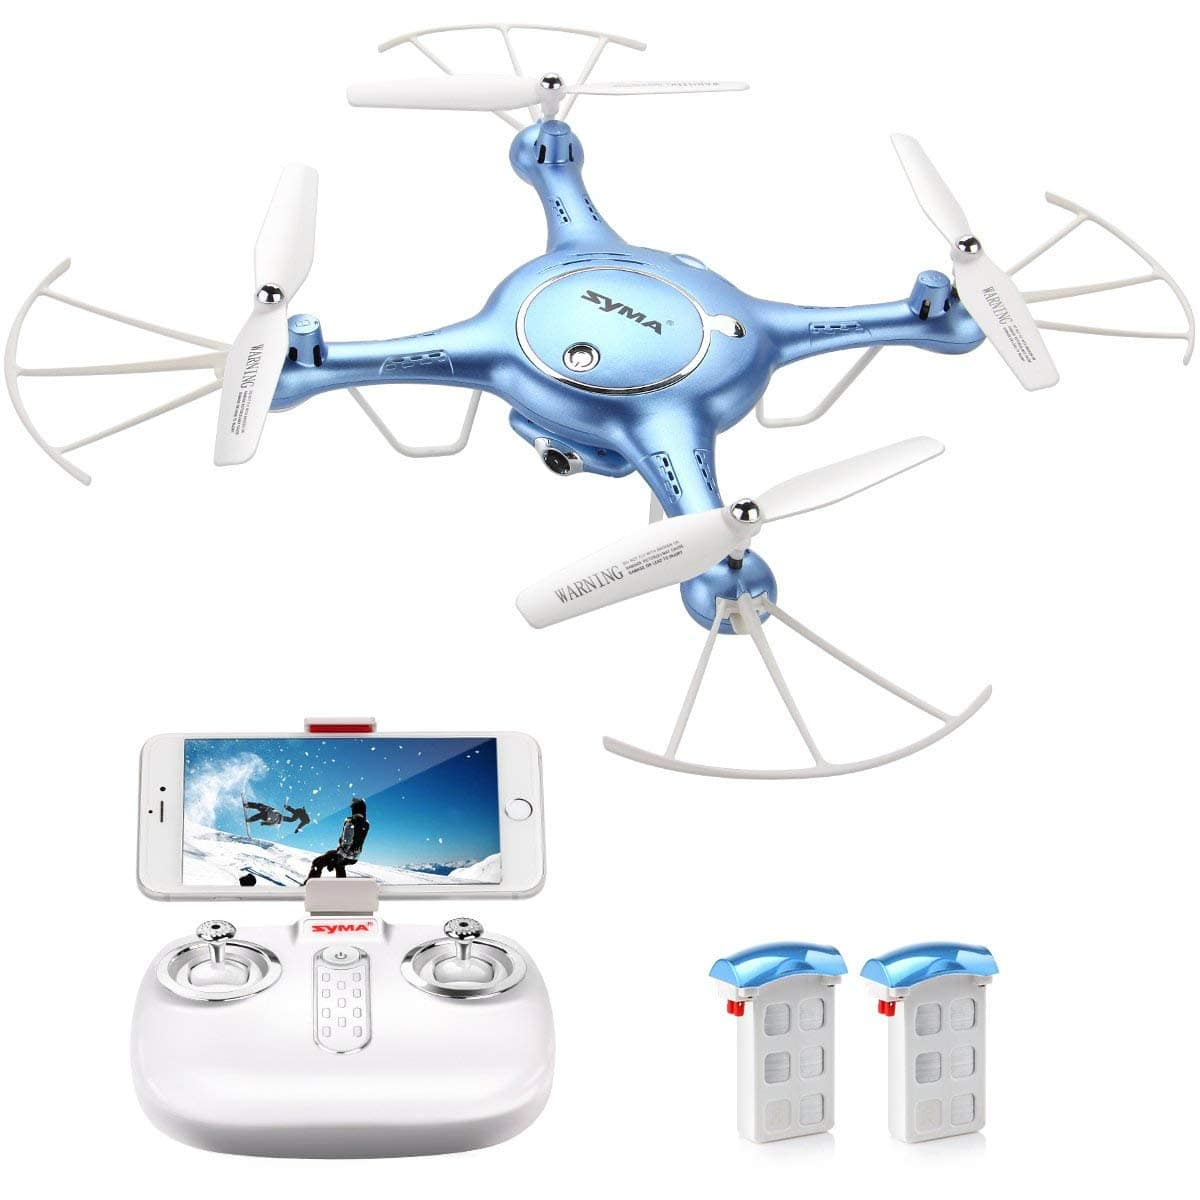 Syma Quadcopter Drone w/ 720P HD Live Video Camera feed in fpv Bonus Battery Included $56